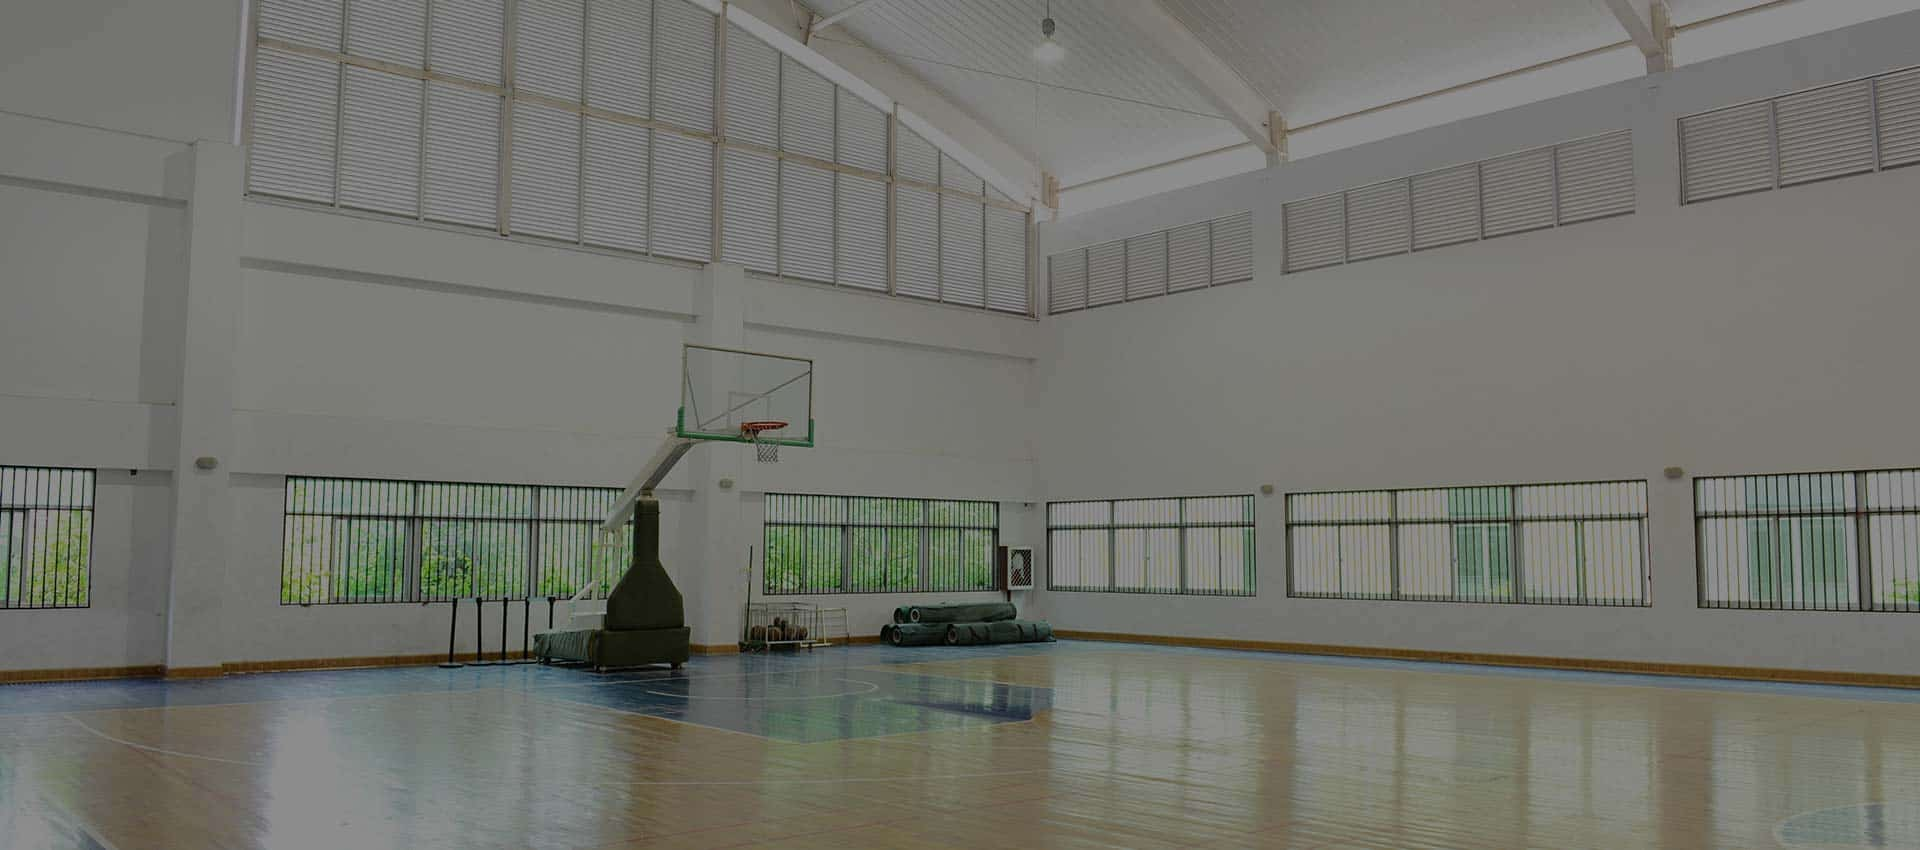 Modern Lighting in a school gymnasium